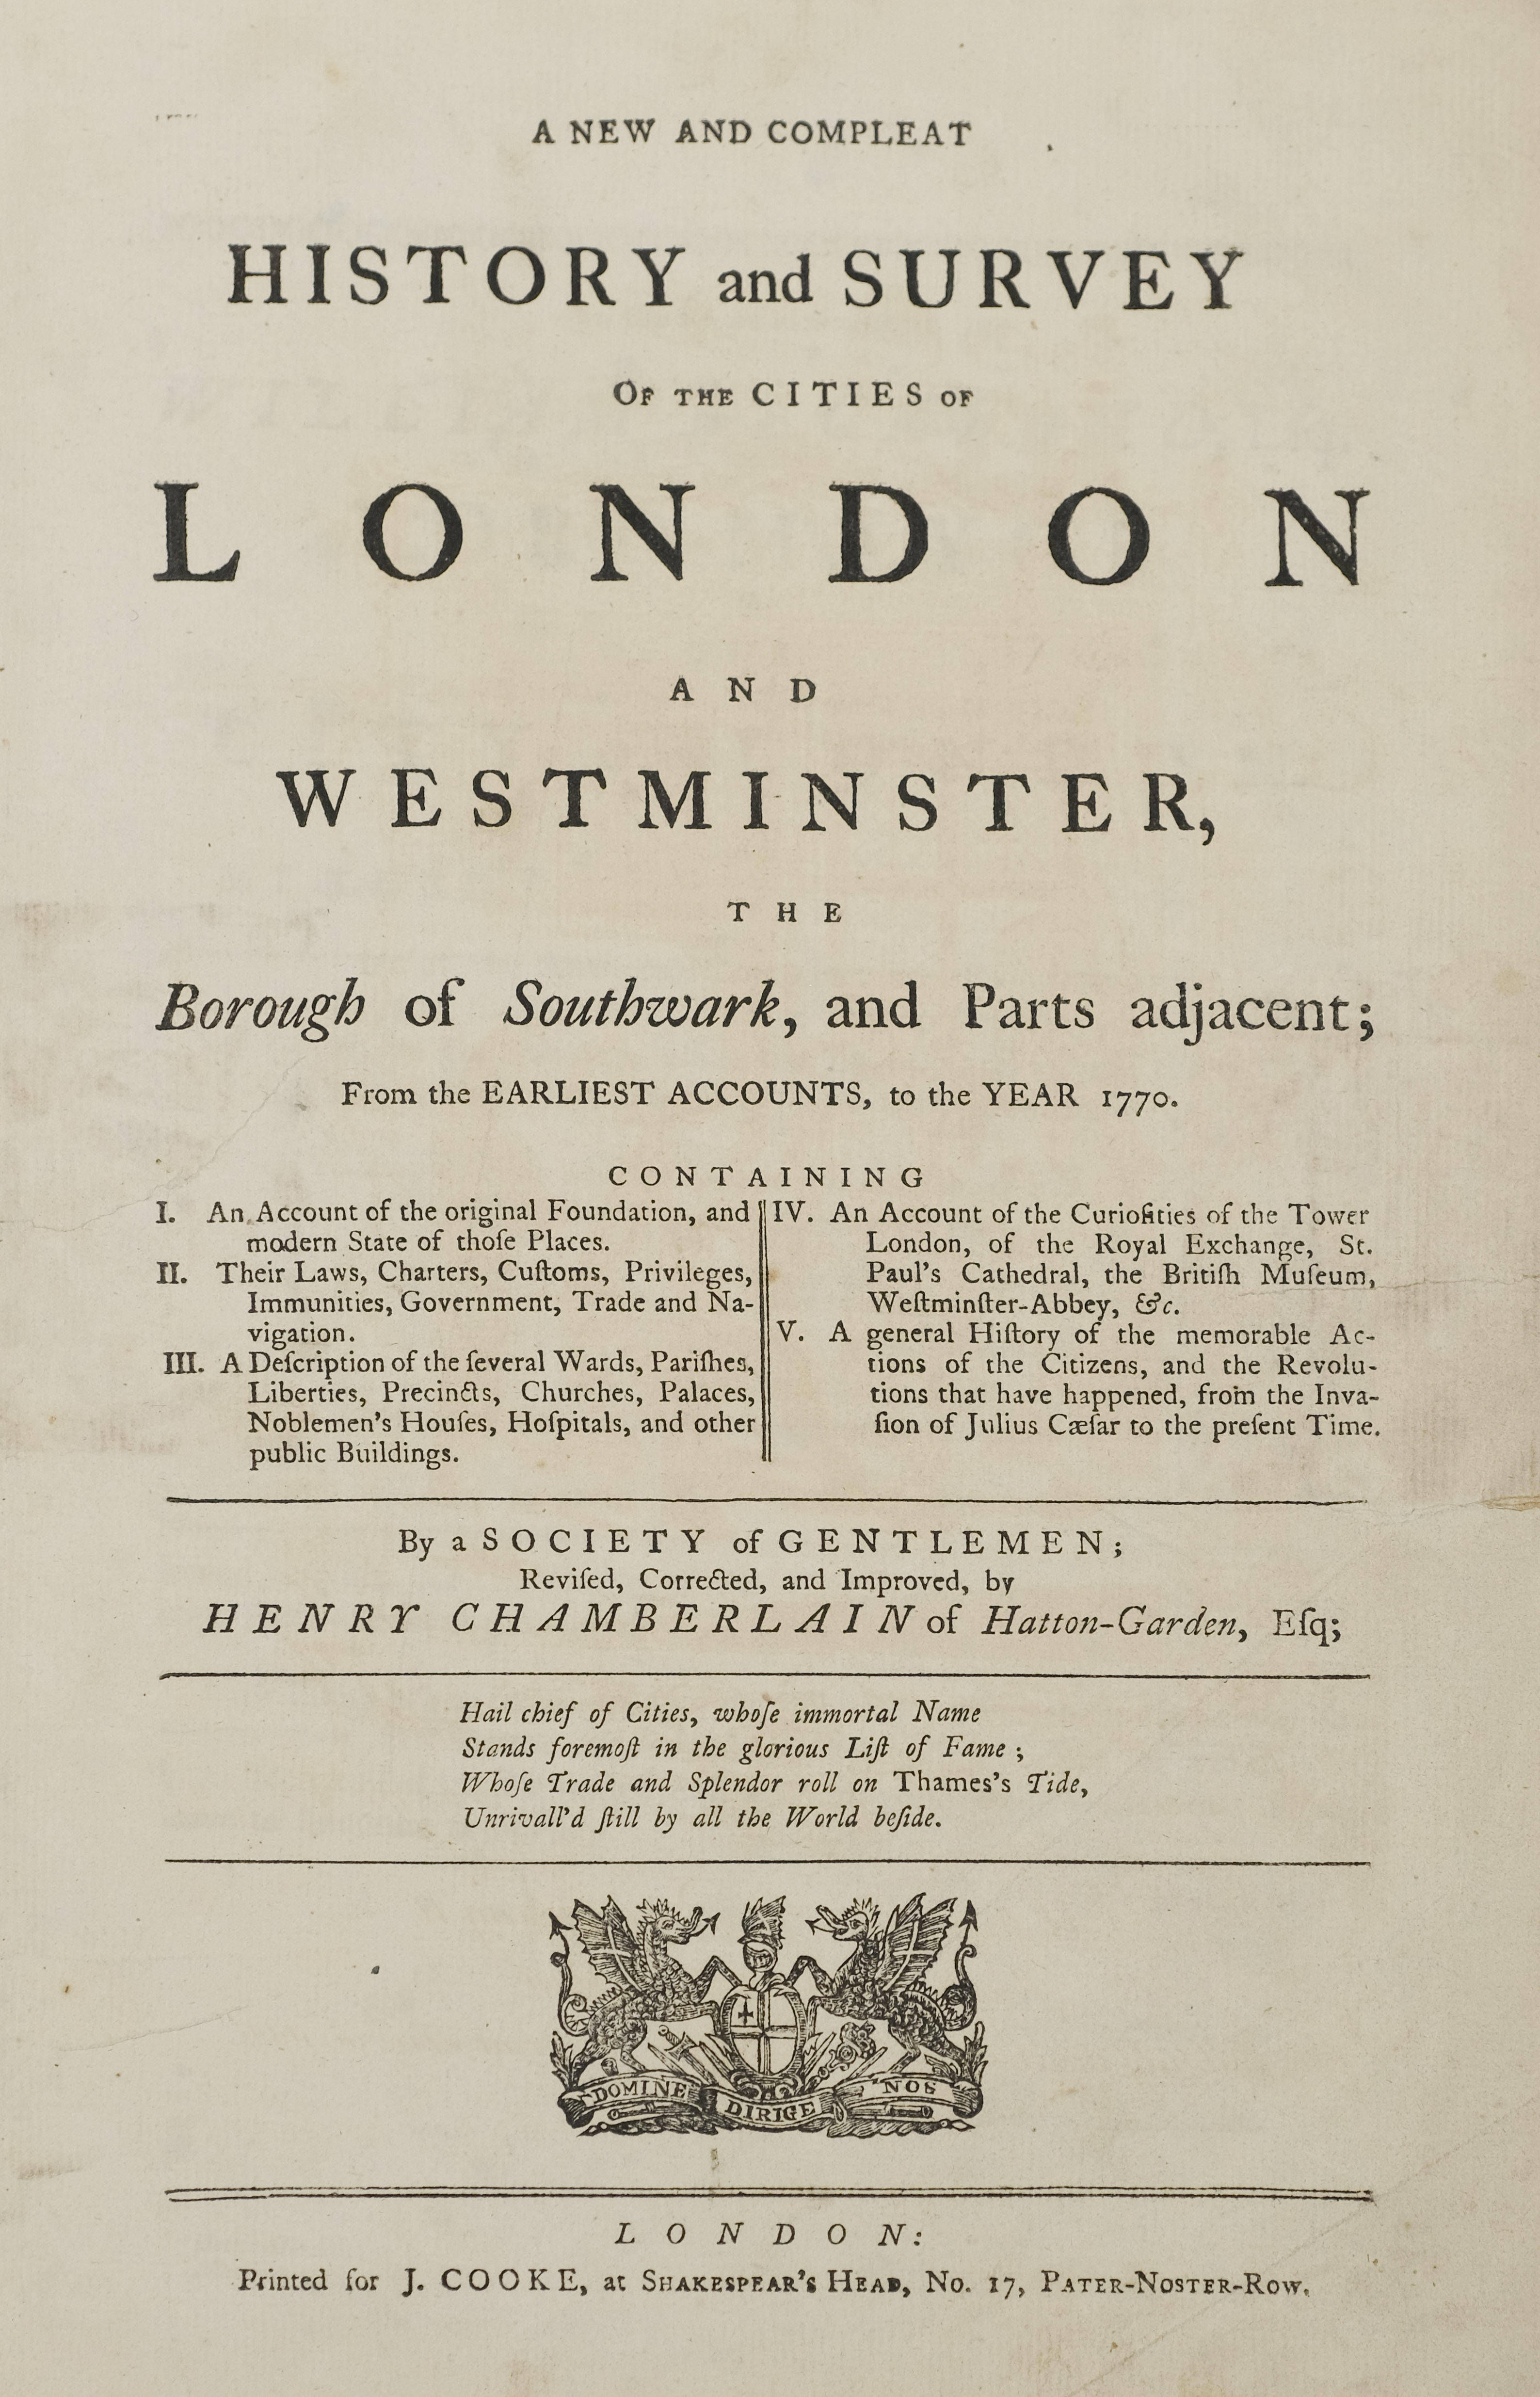 Chamberlain (Henry). A New and Compleat History of the Cities of London and Westminster, [1770]